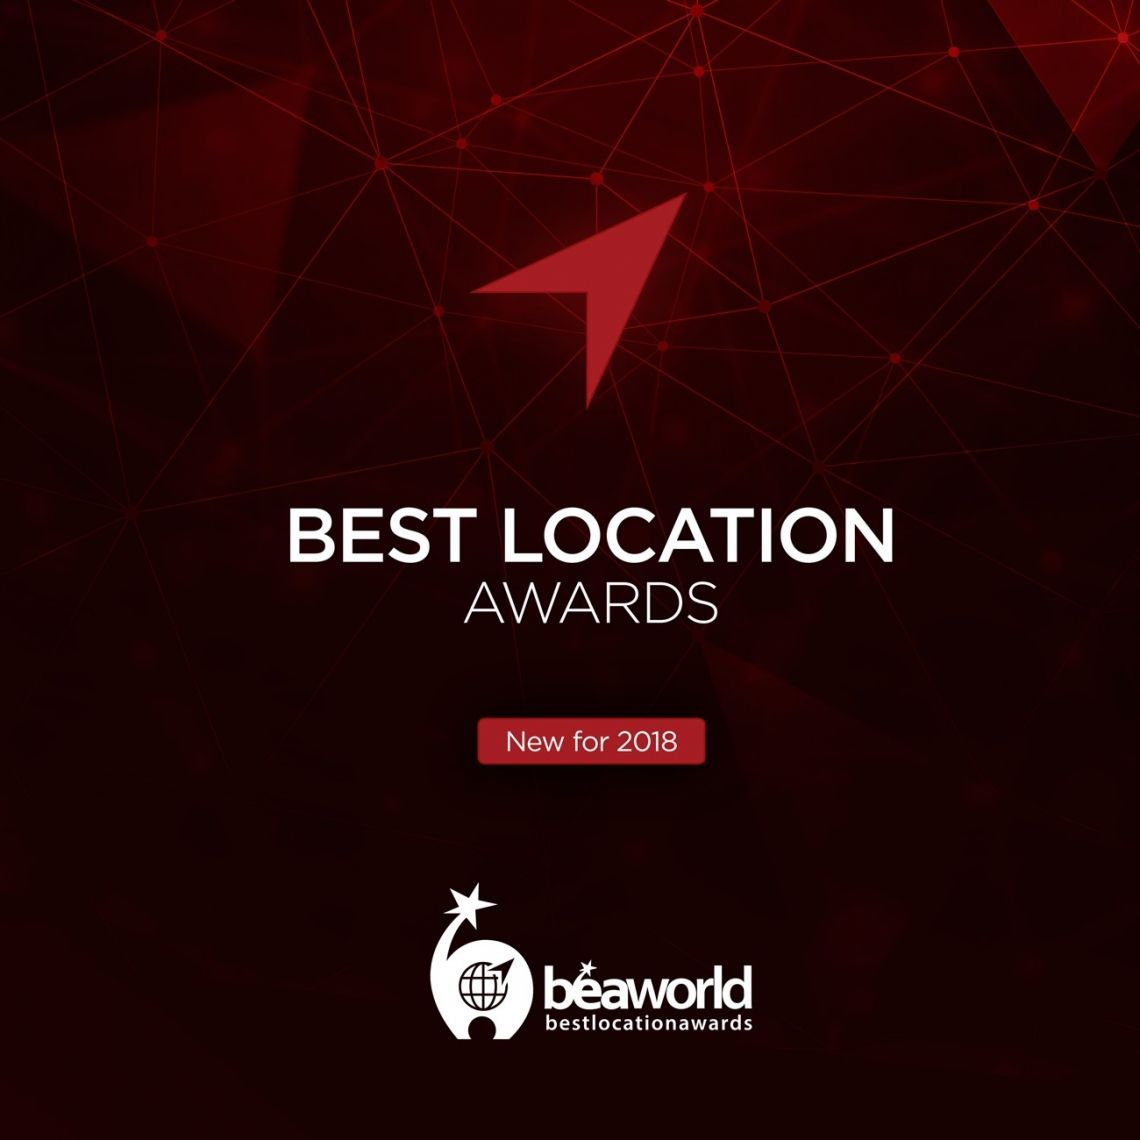 Best Location Awards